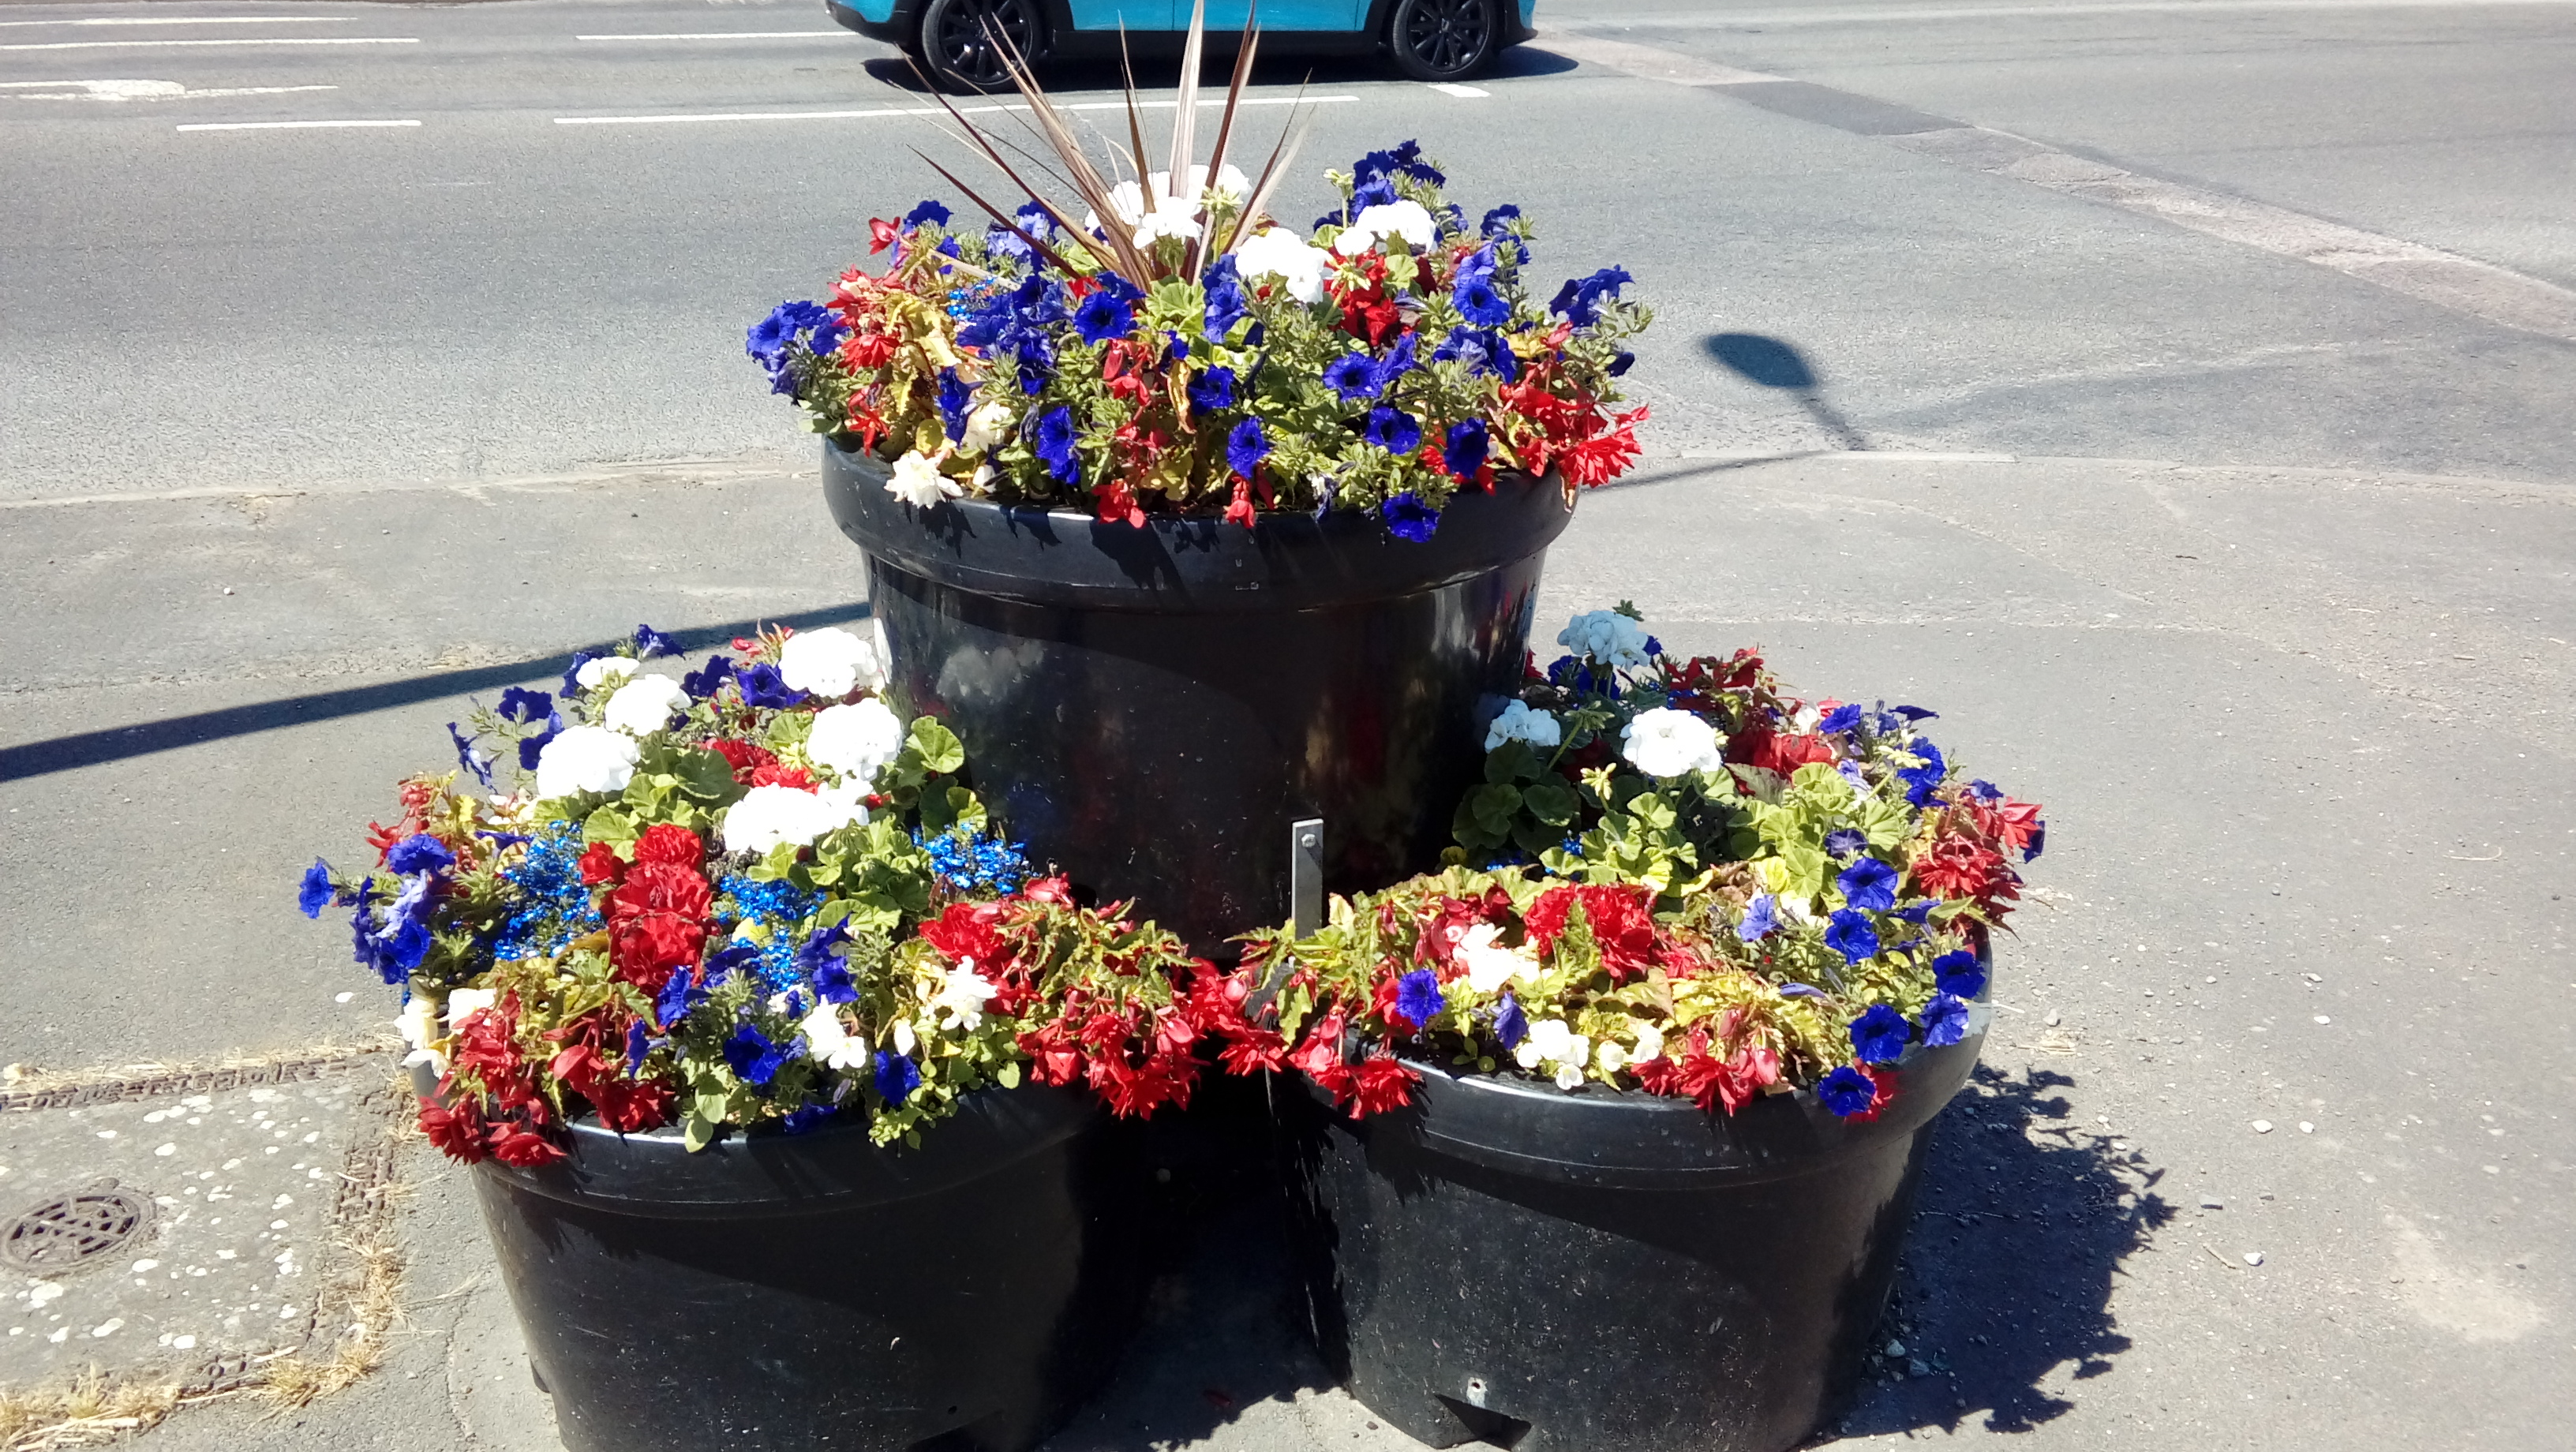 3 baskets of red blue and white flowers